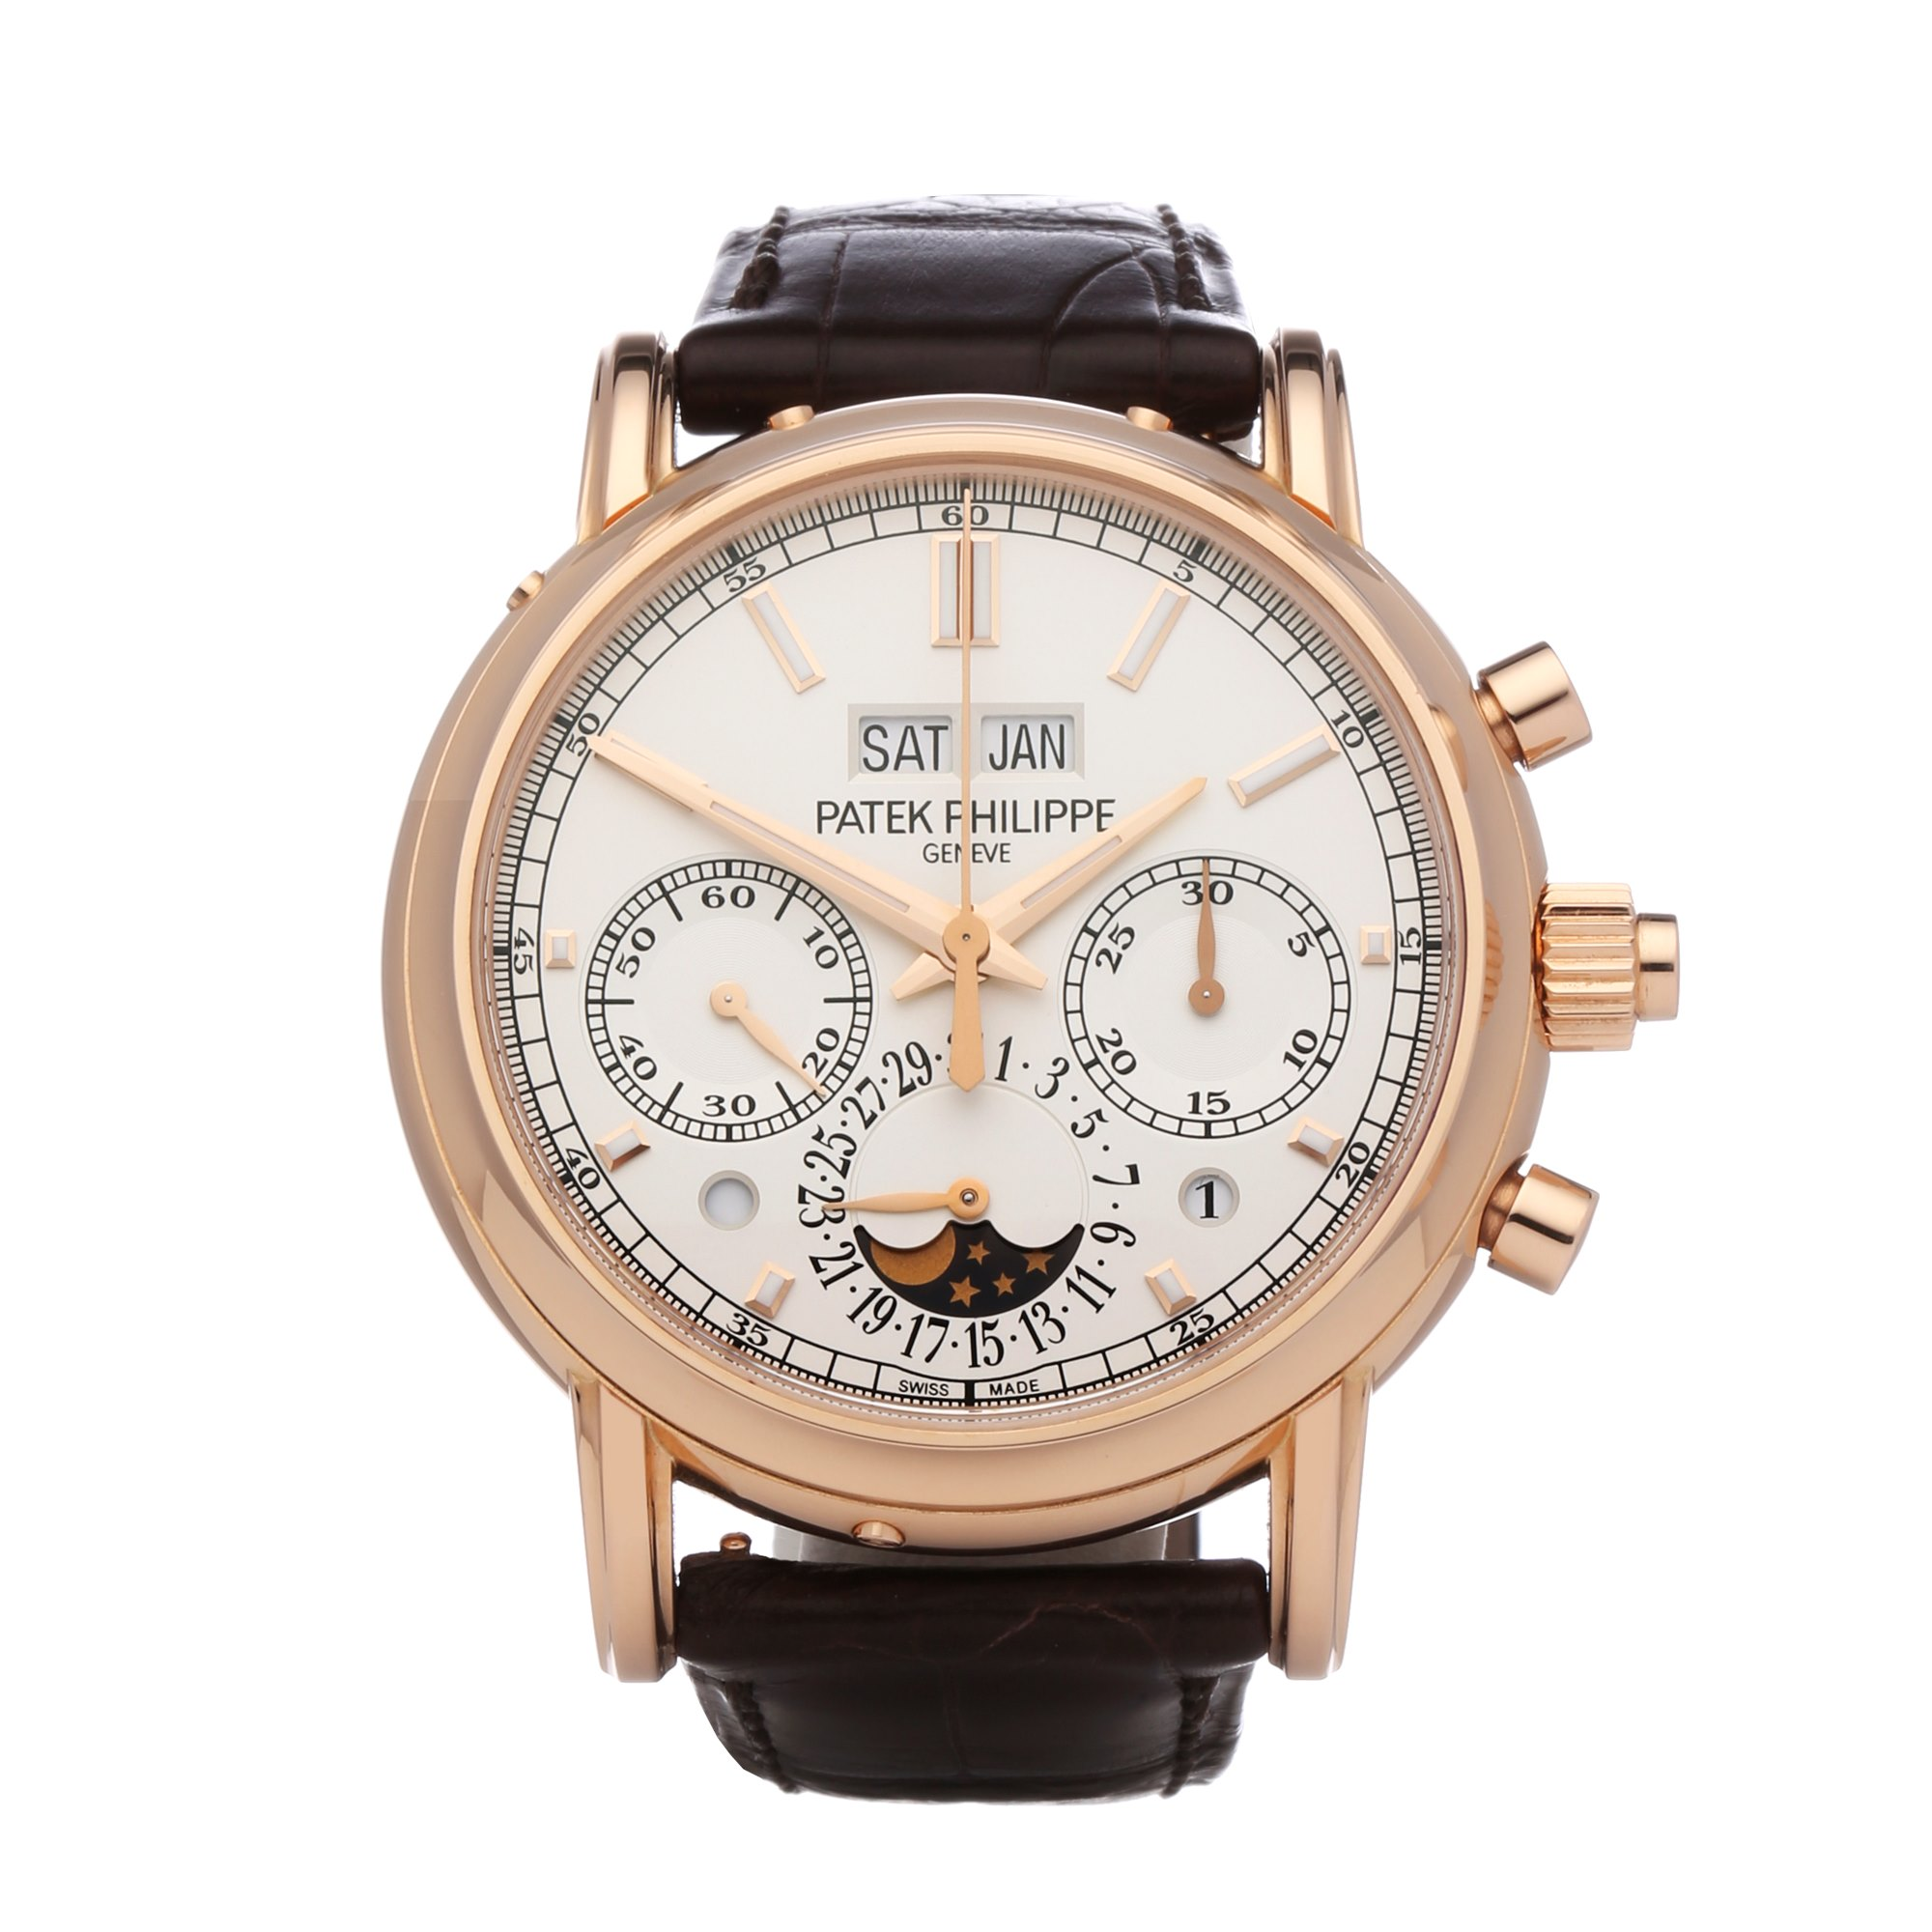 Patek Philippe Complications Perpetual Calendar Split Seconds Chronograph 18K Rose Gold - 5204R-001 Rose Gold 5204R-001